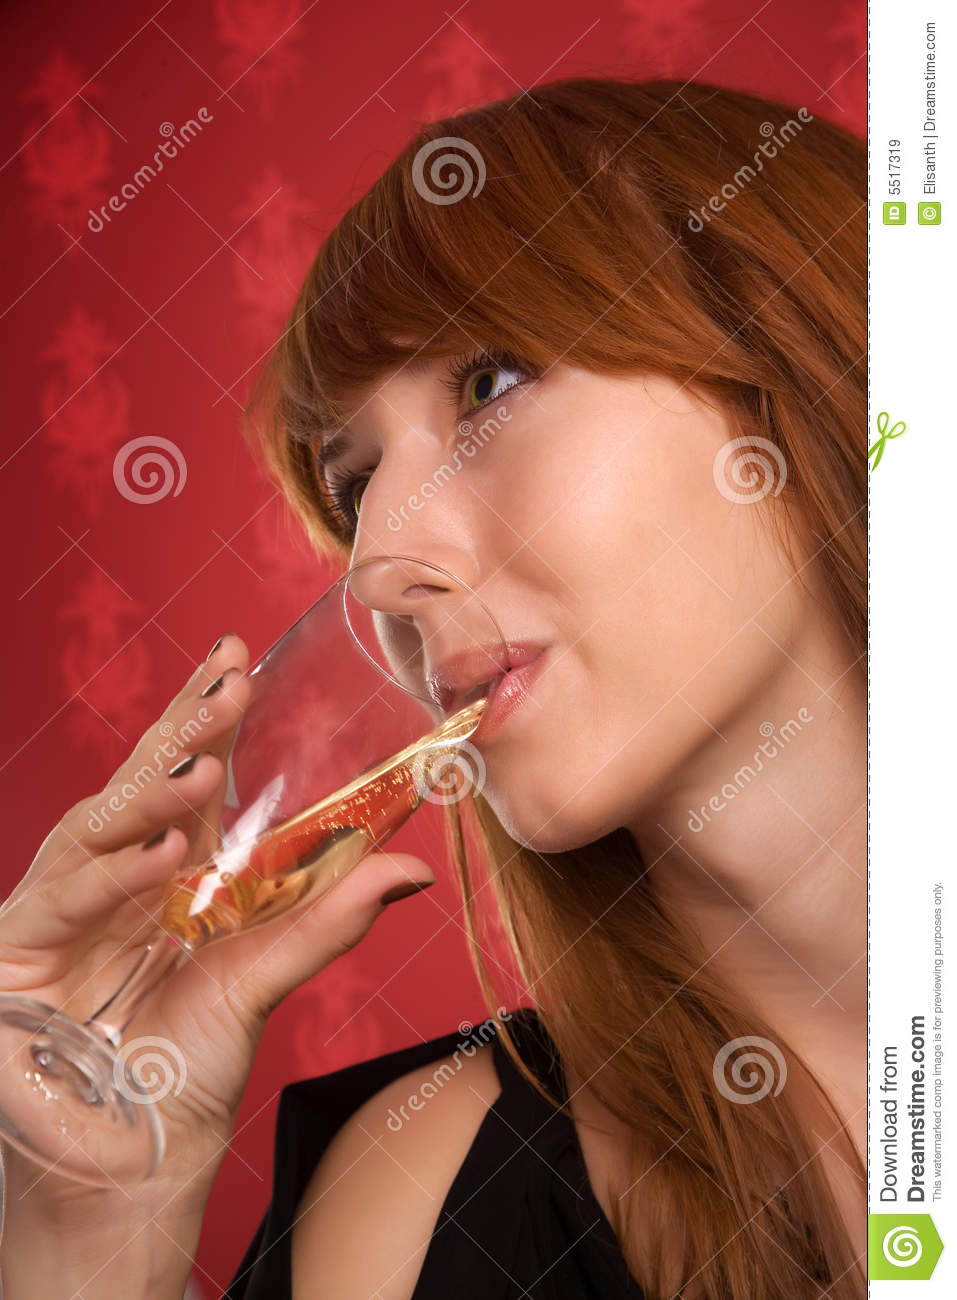 Beautiful Girl Drinking Champagne Royalty Free Stock